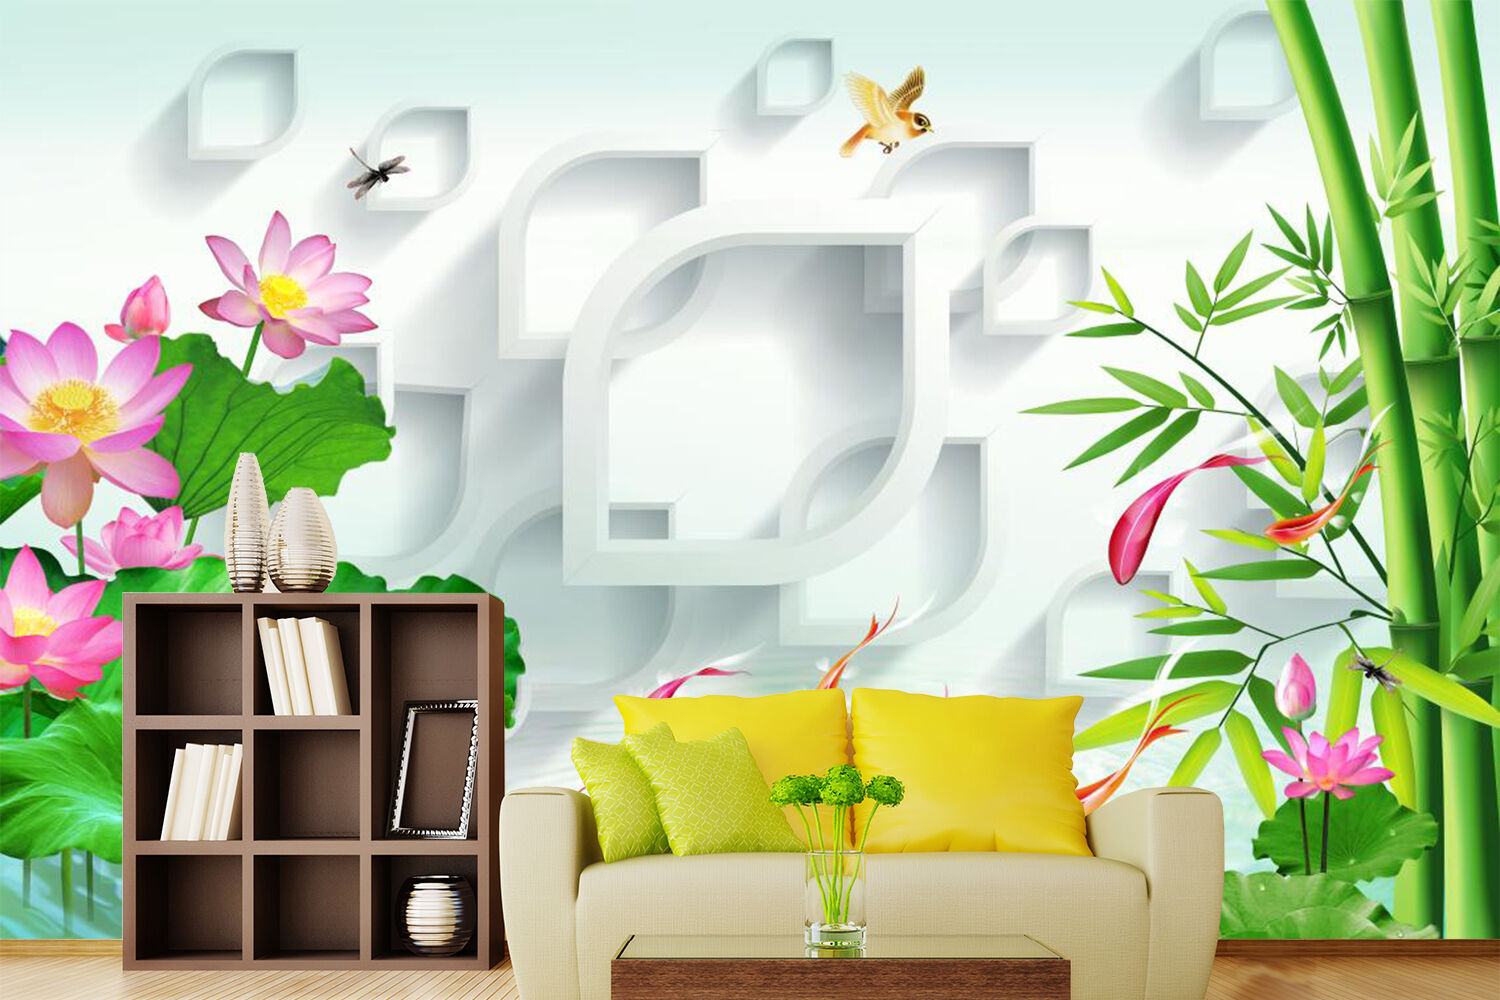 3D Flowers, bamboo 33 Wall Paper Wall Print Decal Wall Deco Indoor Wall Murals